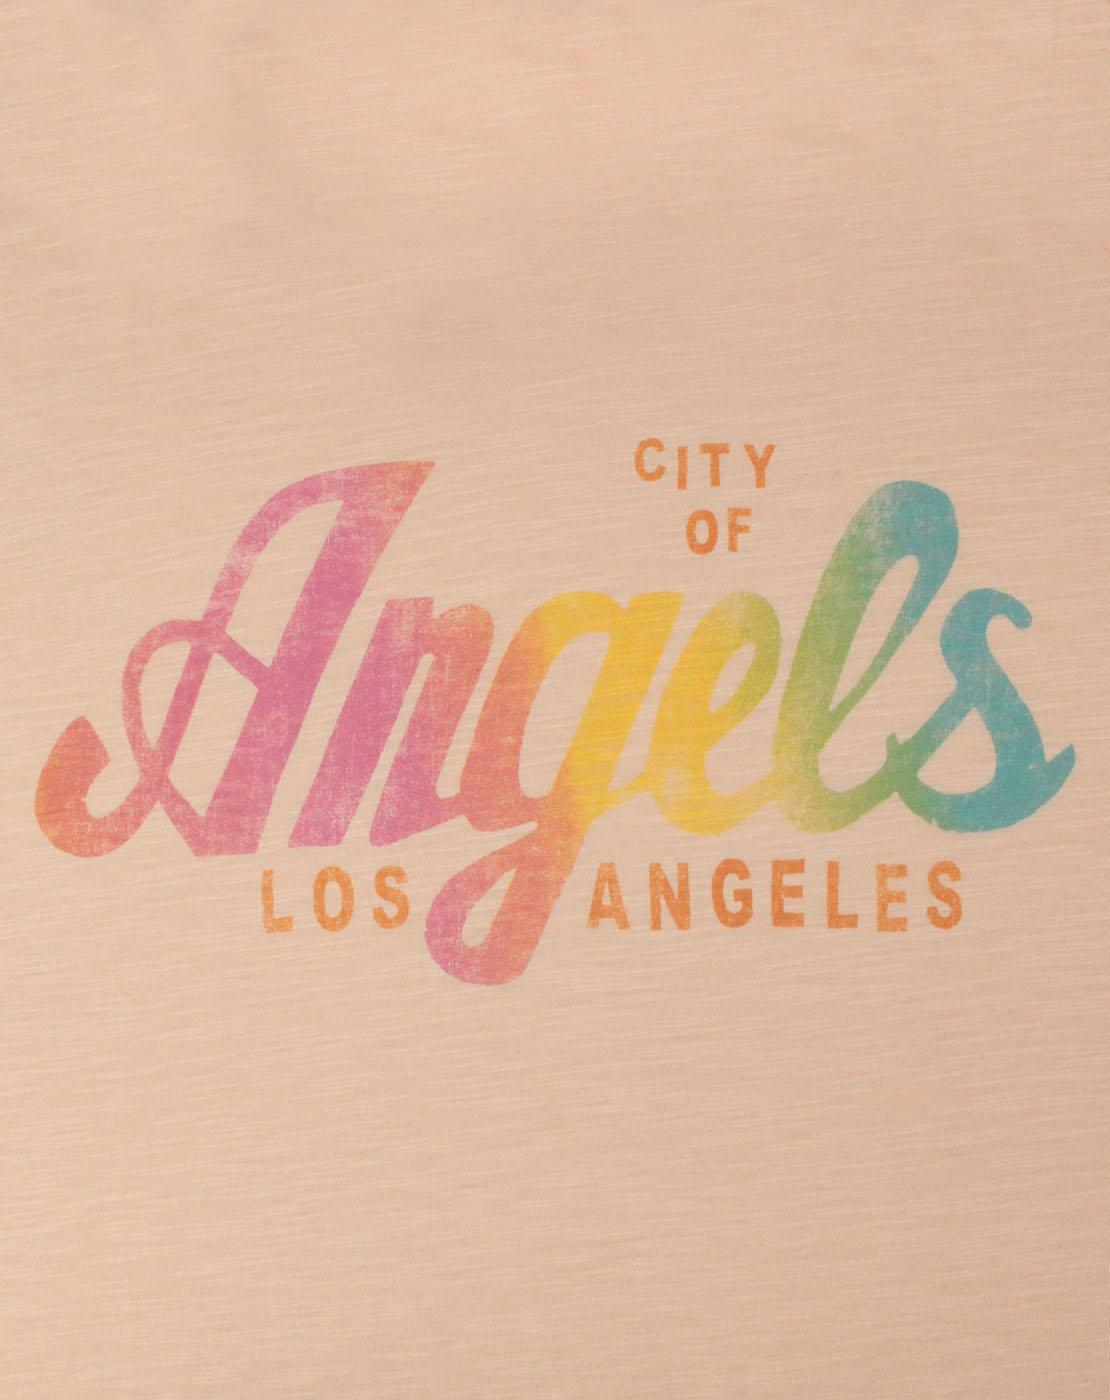 Junk-Food-Los-Angeles-City-Of-Angels-Women-039-s-T-Shirt thumbnail 6